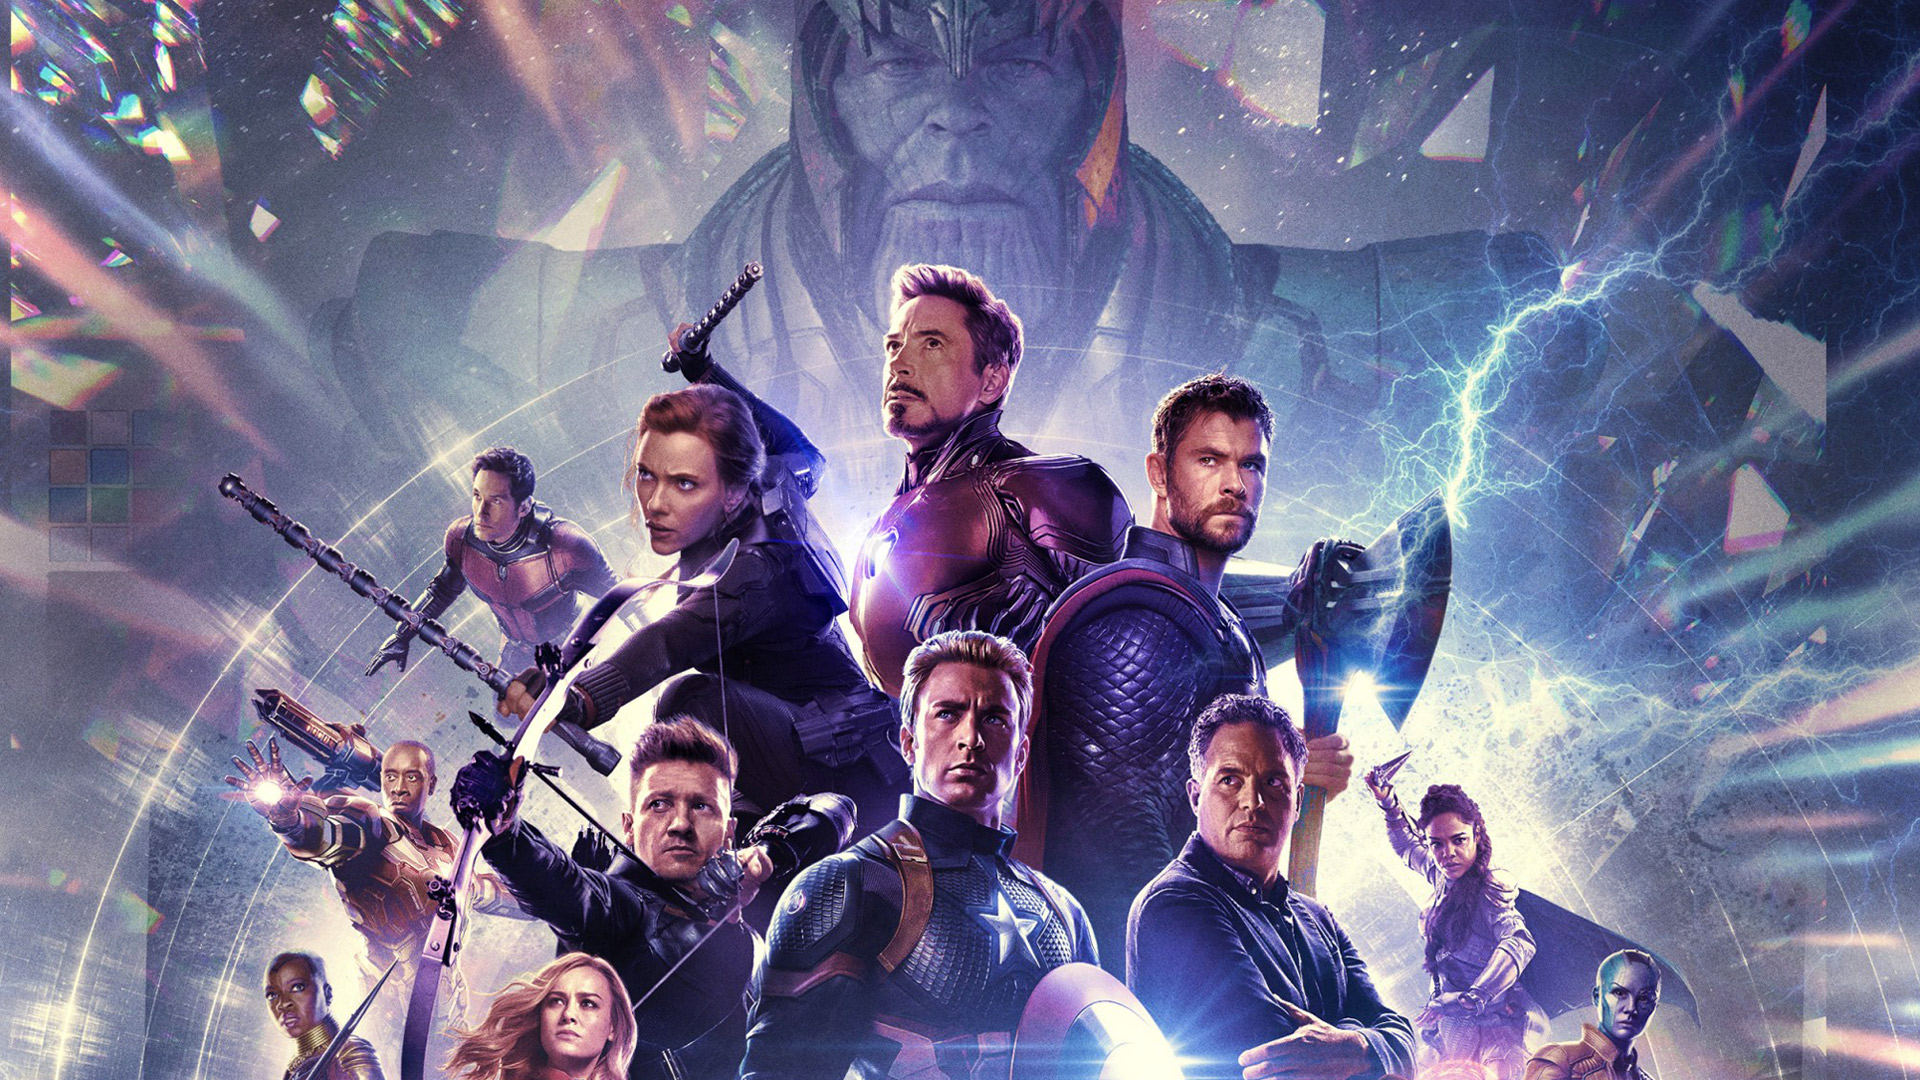 Assembling the End with Marvel's Avengers: Endgame